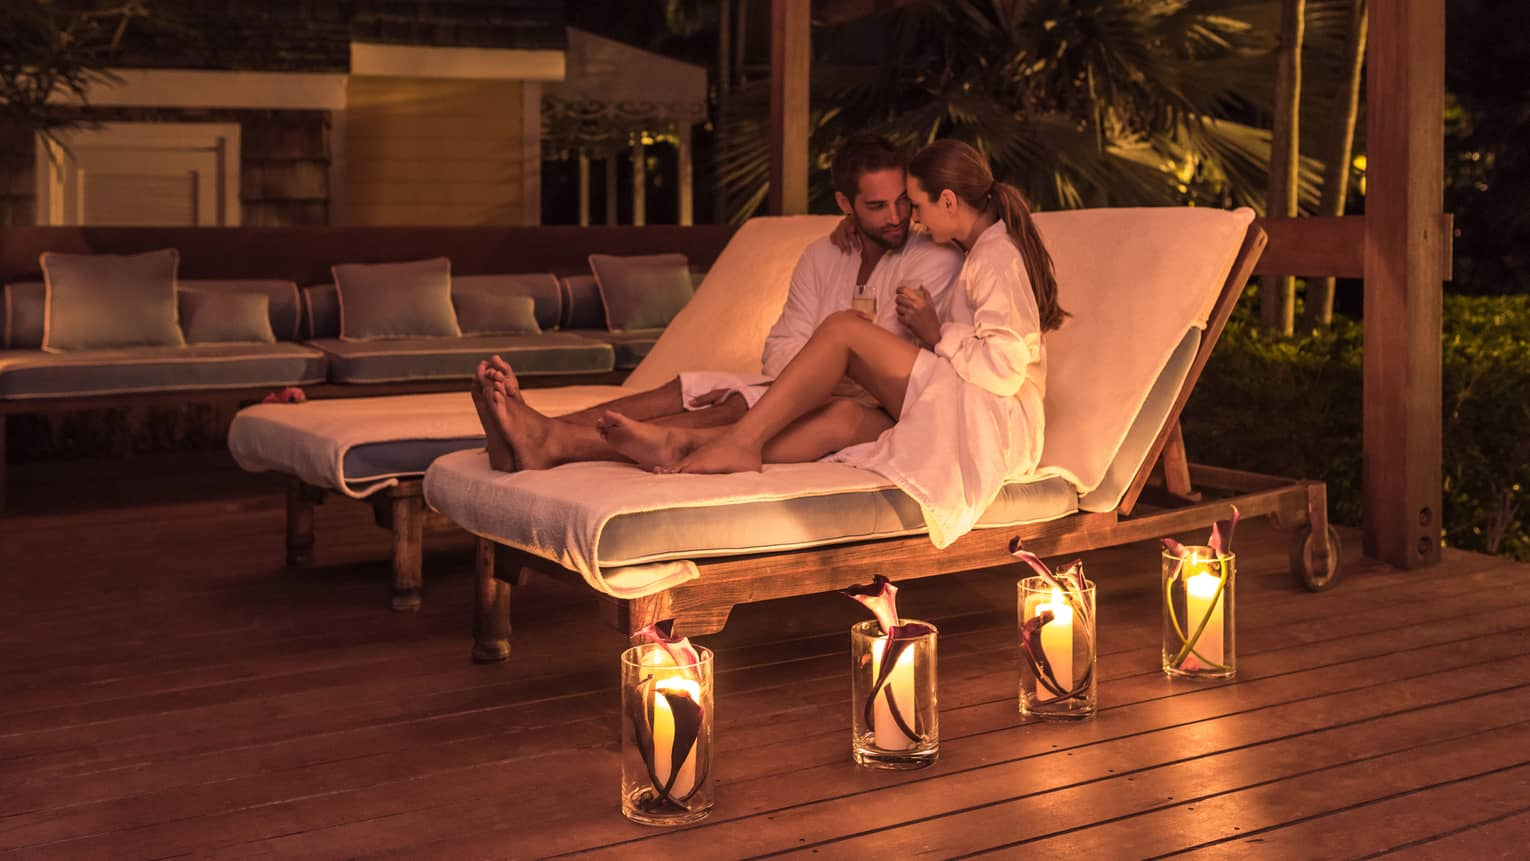 Man and woman in bathrobes relax on lounge chairs, glowing candles on deck at night